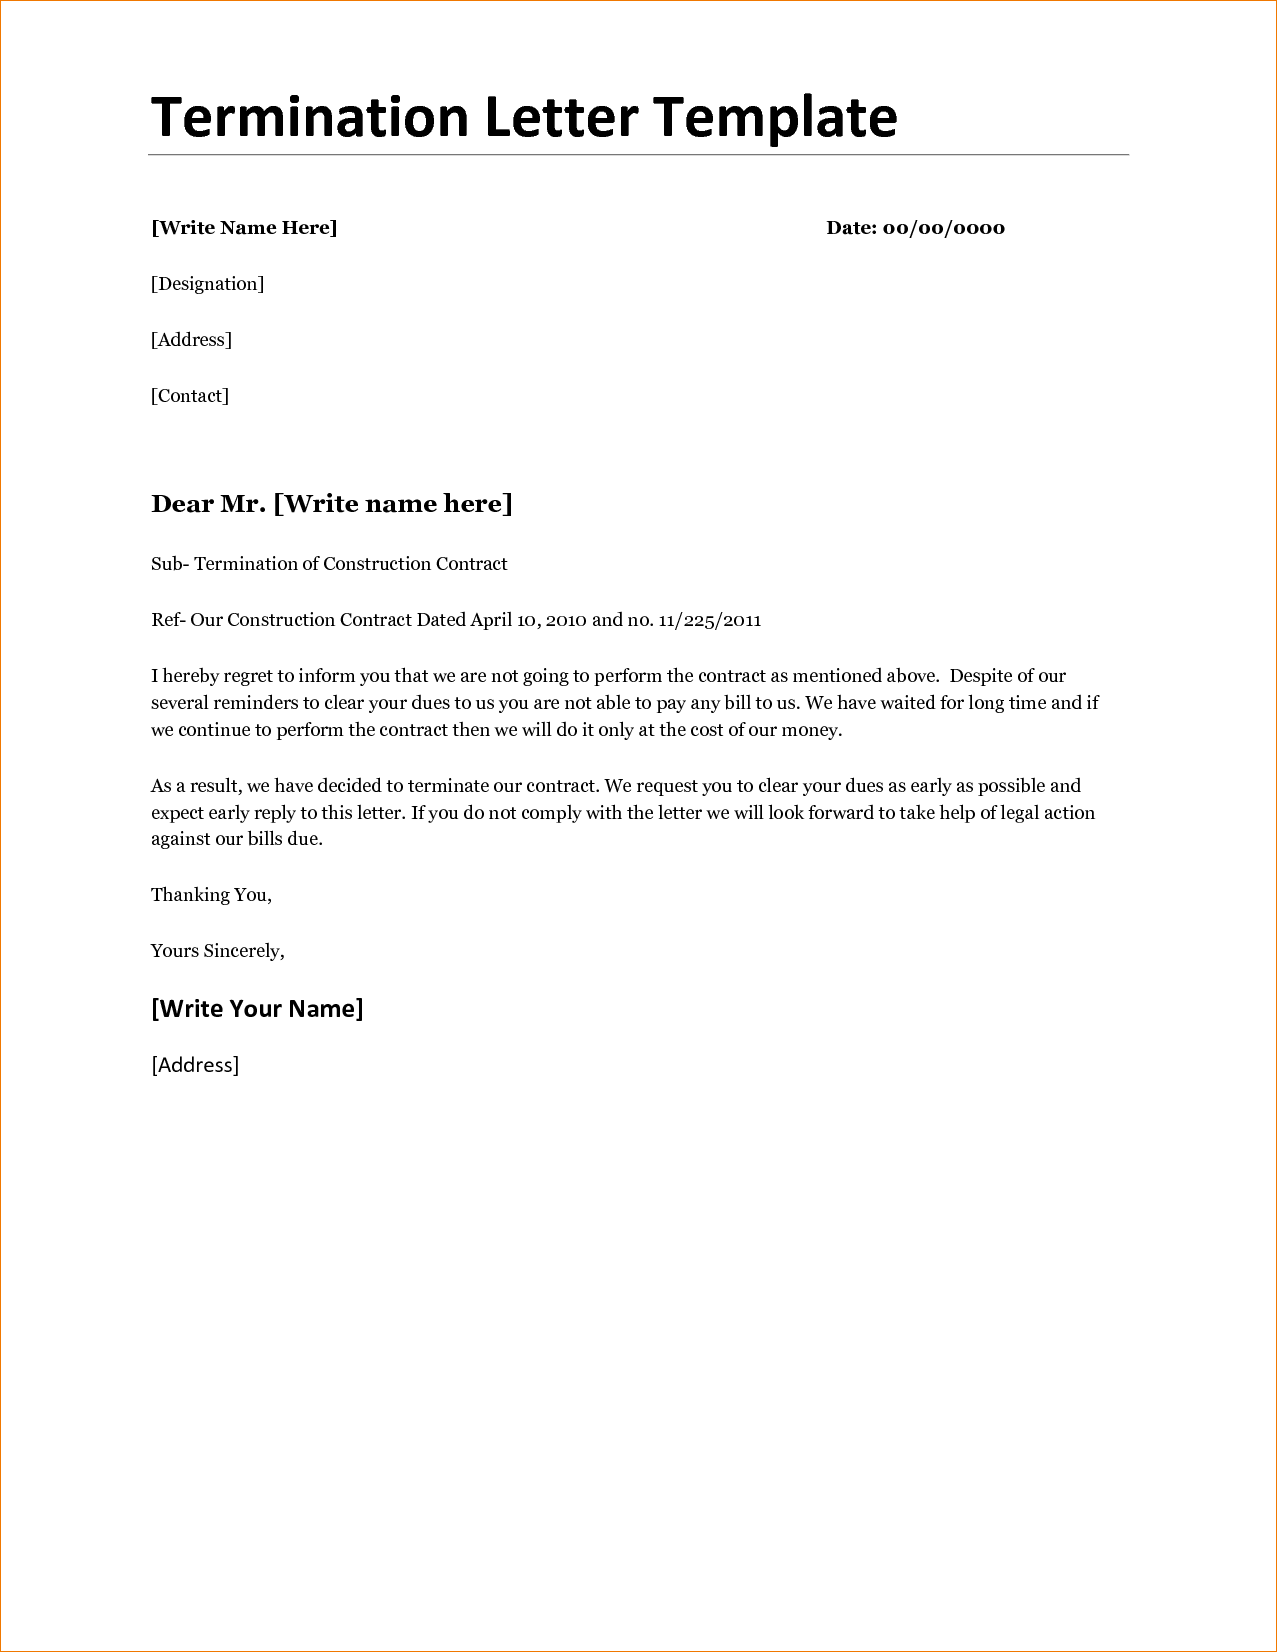 Agreement termination letter this contract example return previous agreement termination letter this contract example return previous page welk resorts cancellation spiritdancerdesigns Image collections